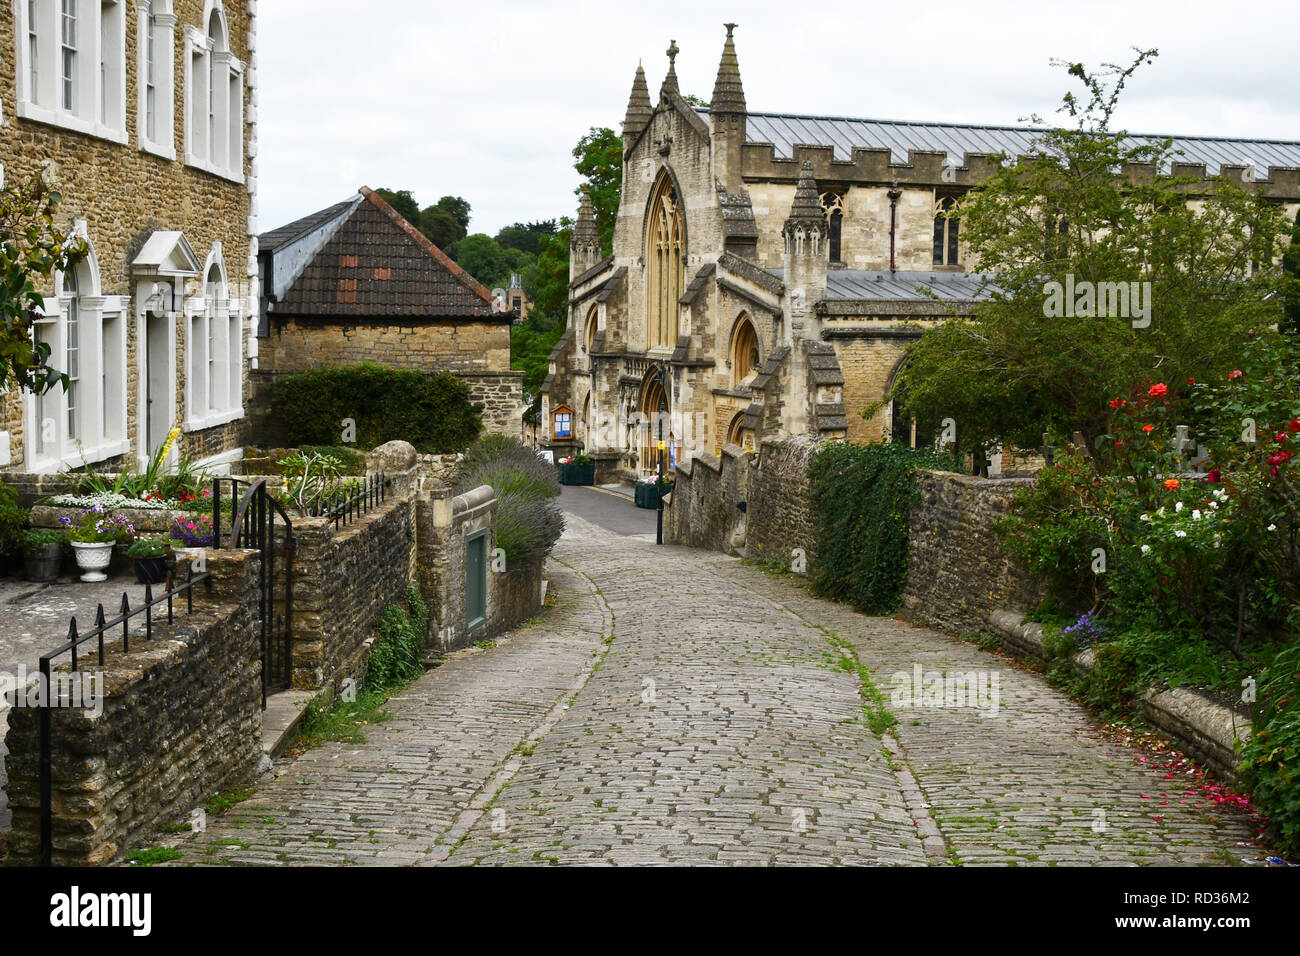 Gentle Street in Frome, Somerset descends to St Johns Church.This steep cobbled street used  as a set in many films. - Stock Image